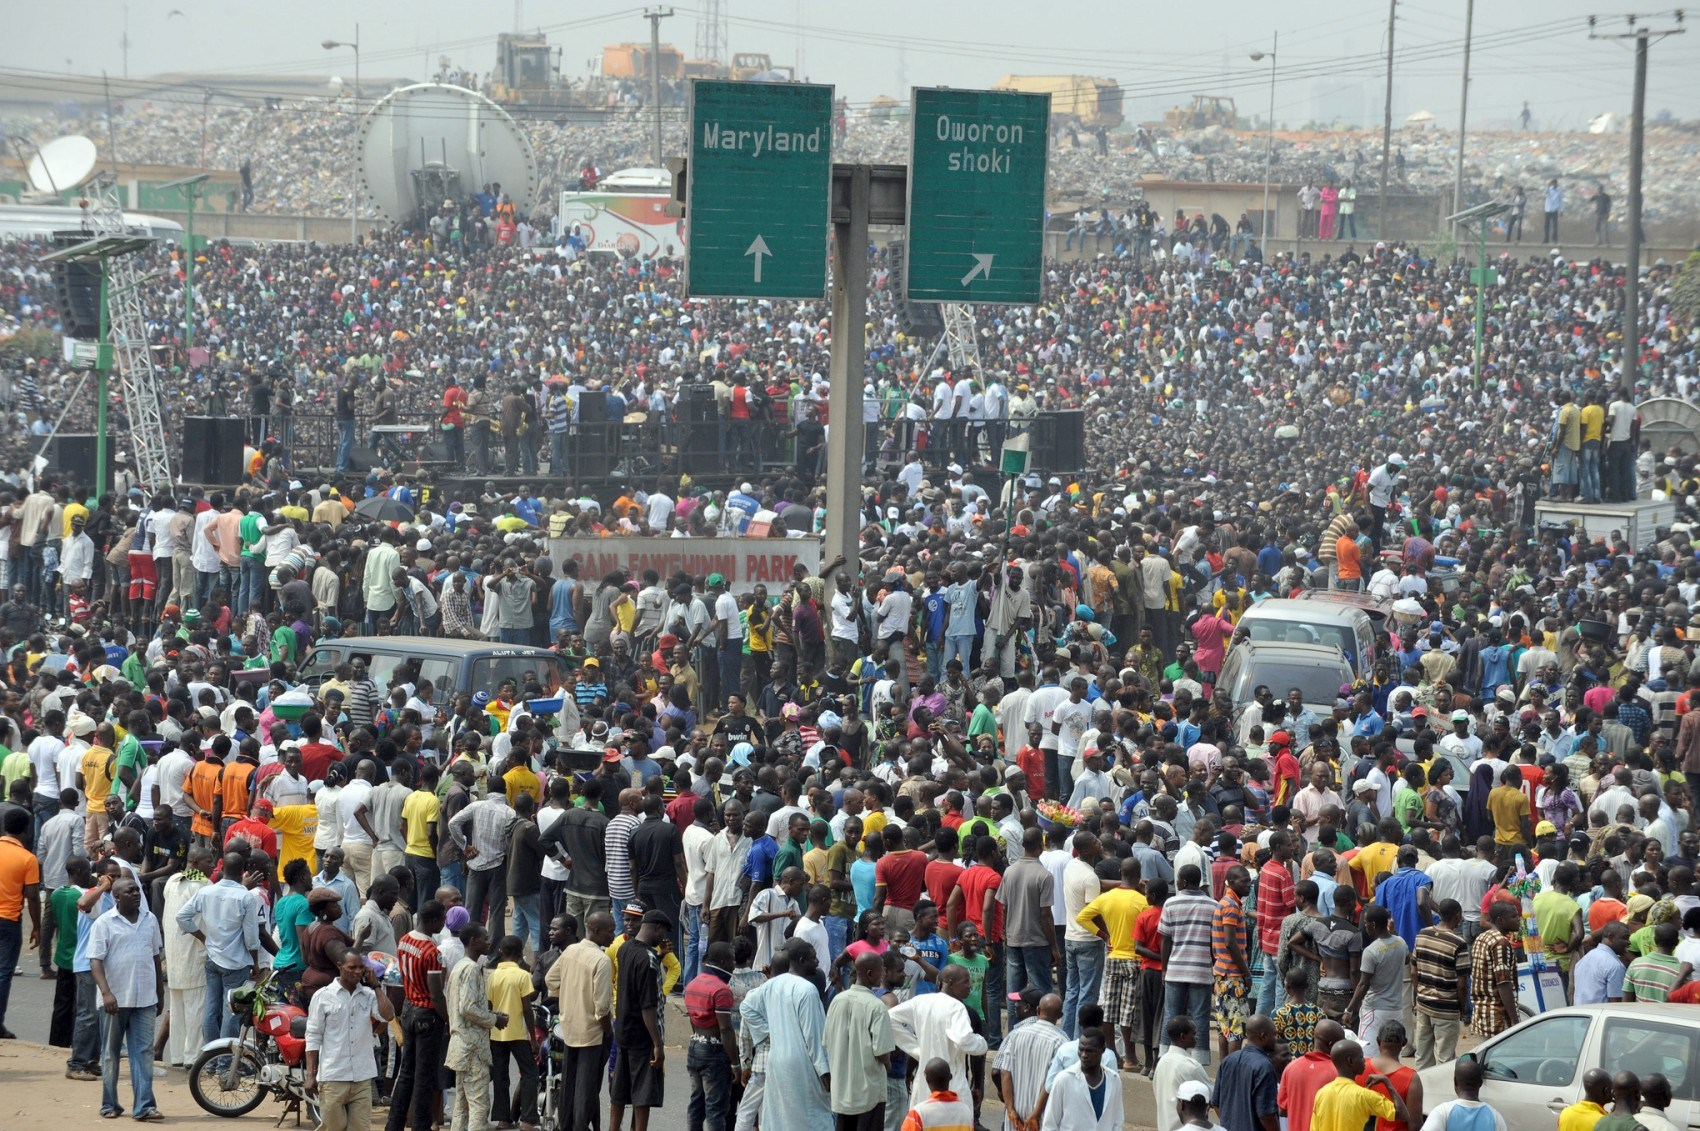 Nigeria's Population Commission releases controversial report ahead of census exercise